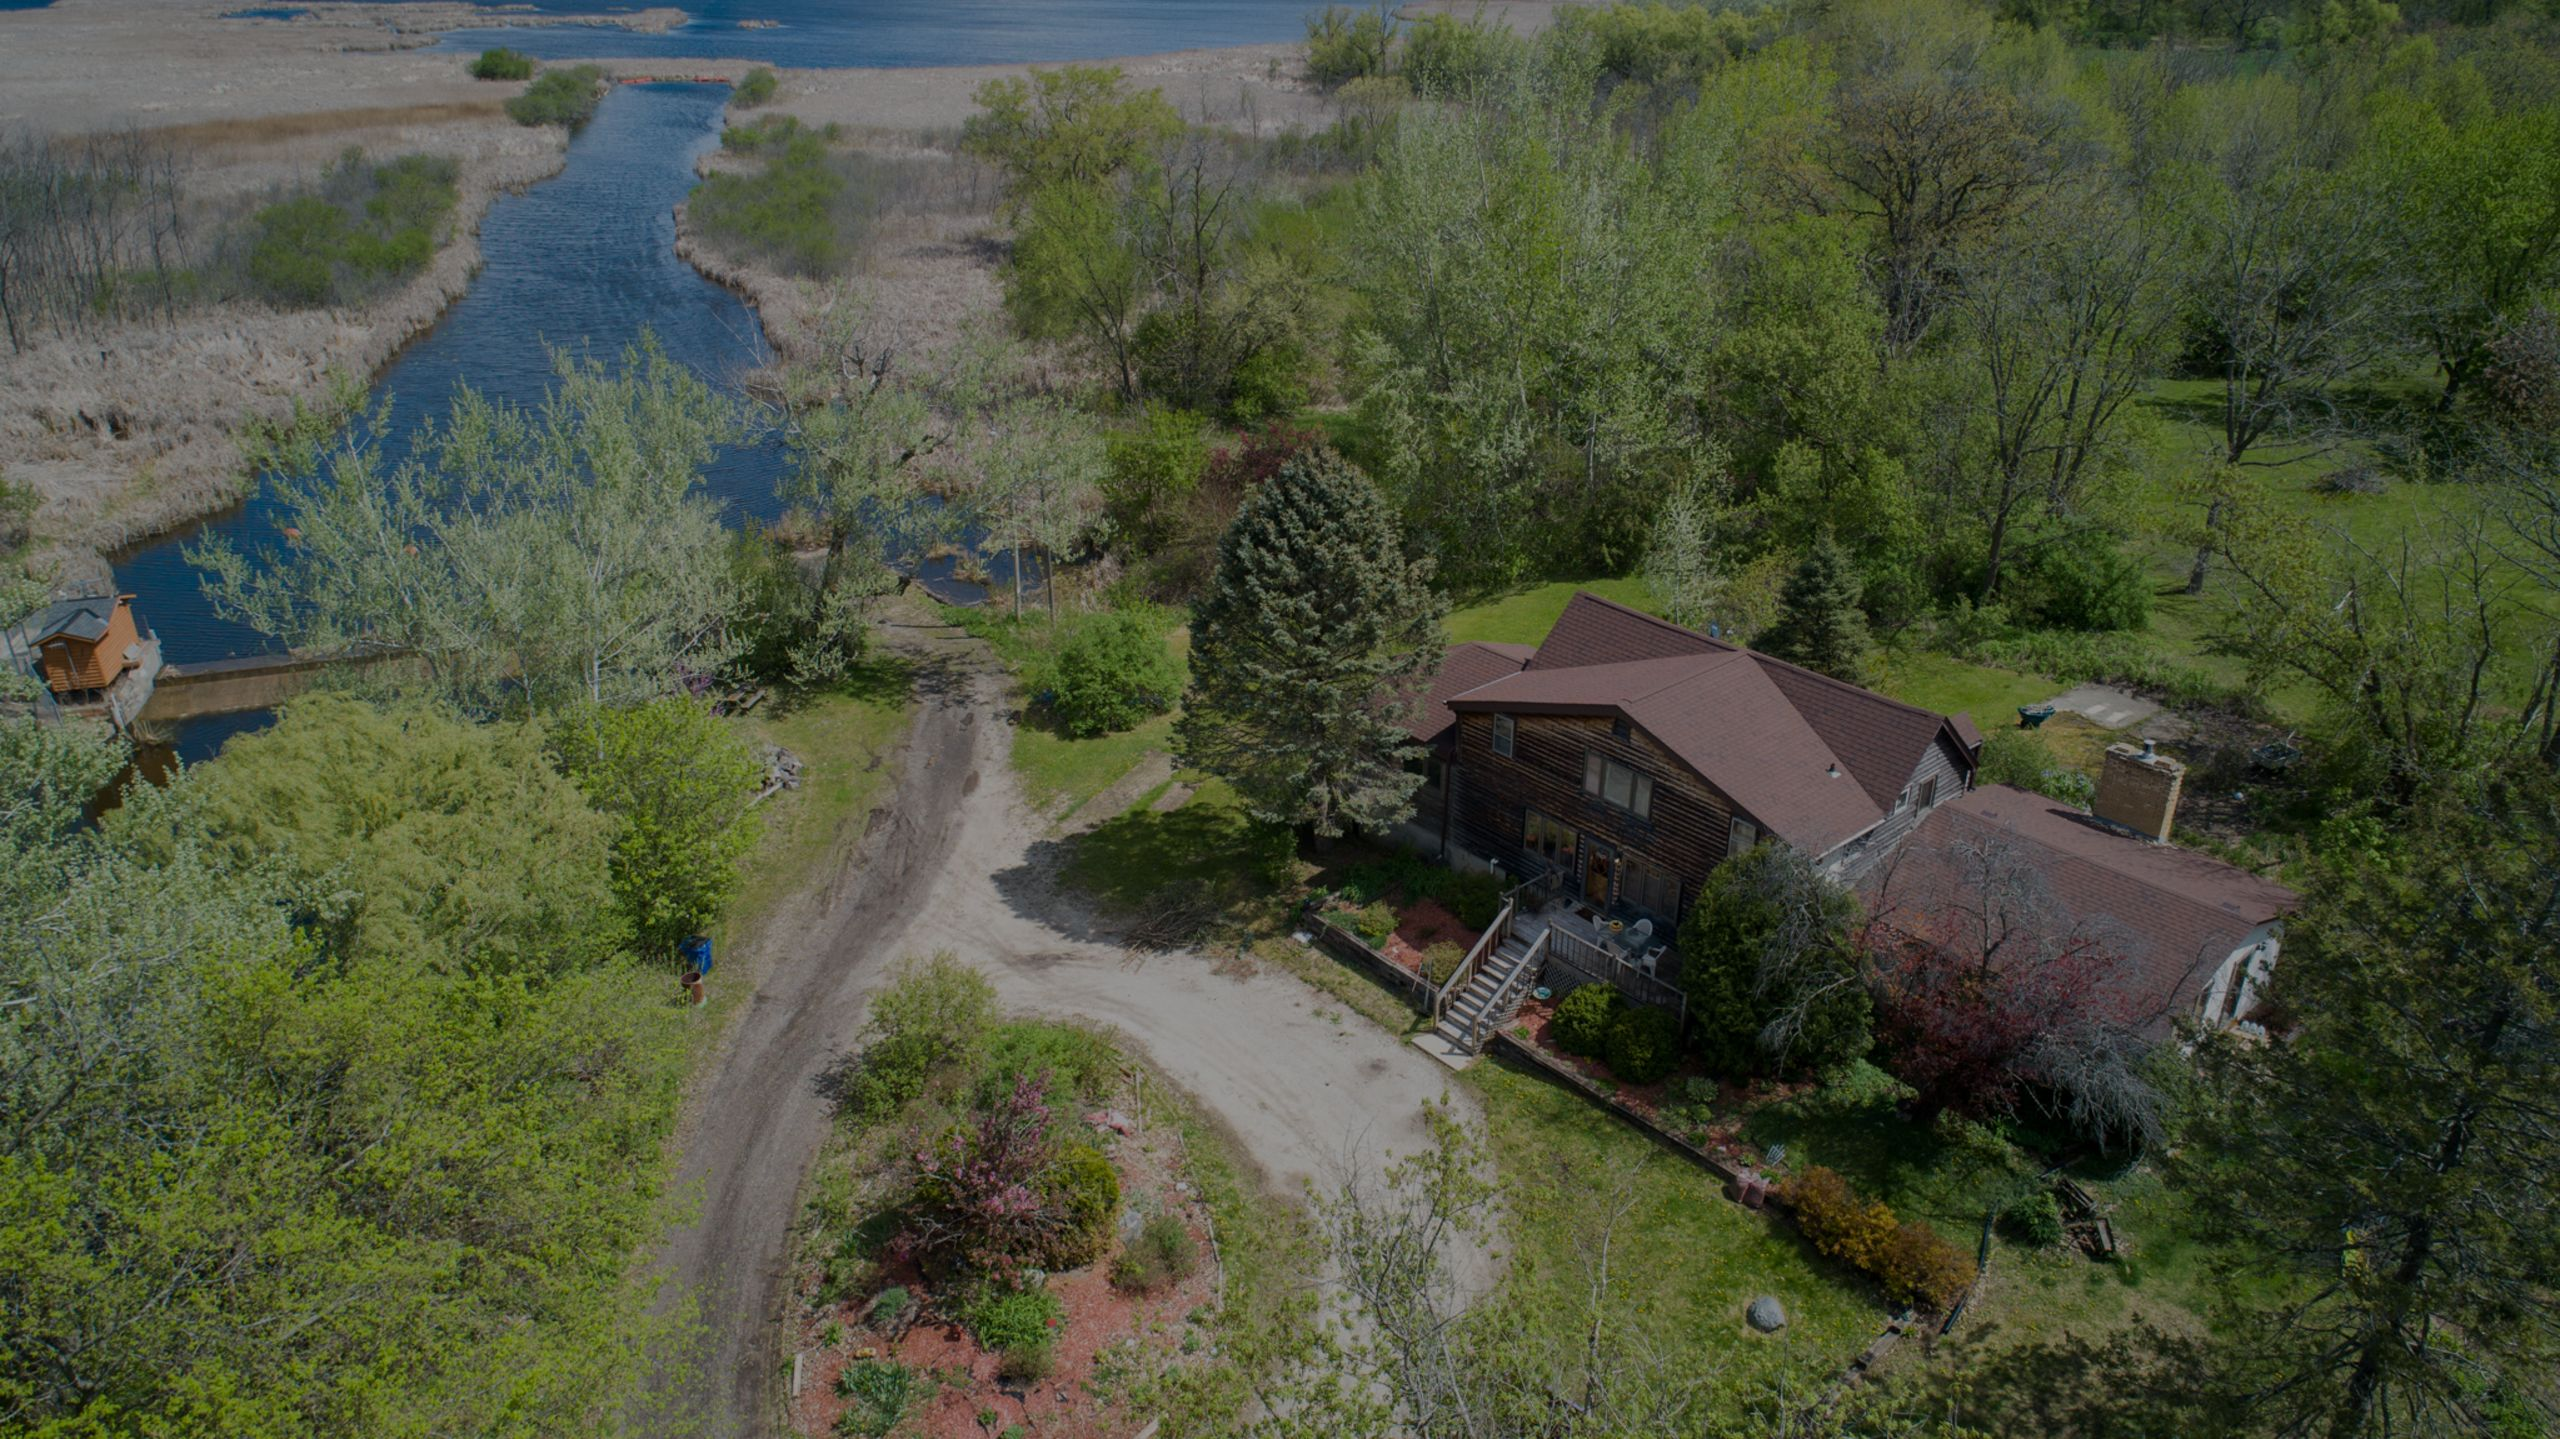 COMING SOON – W173S10626 Muskego Dam Dr. Muskego, WI 53150